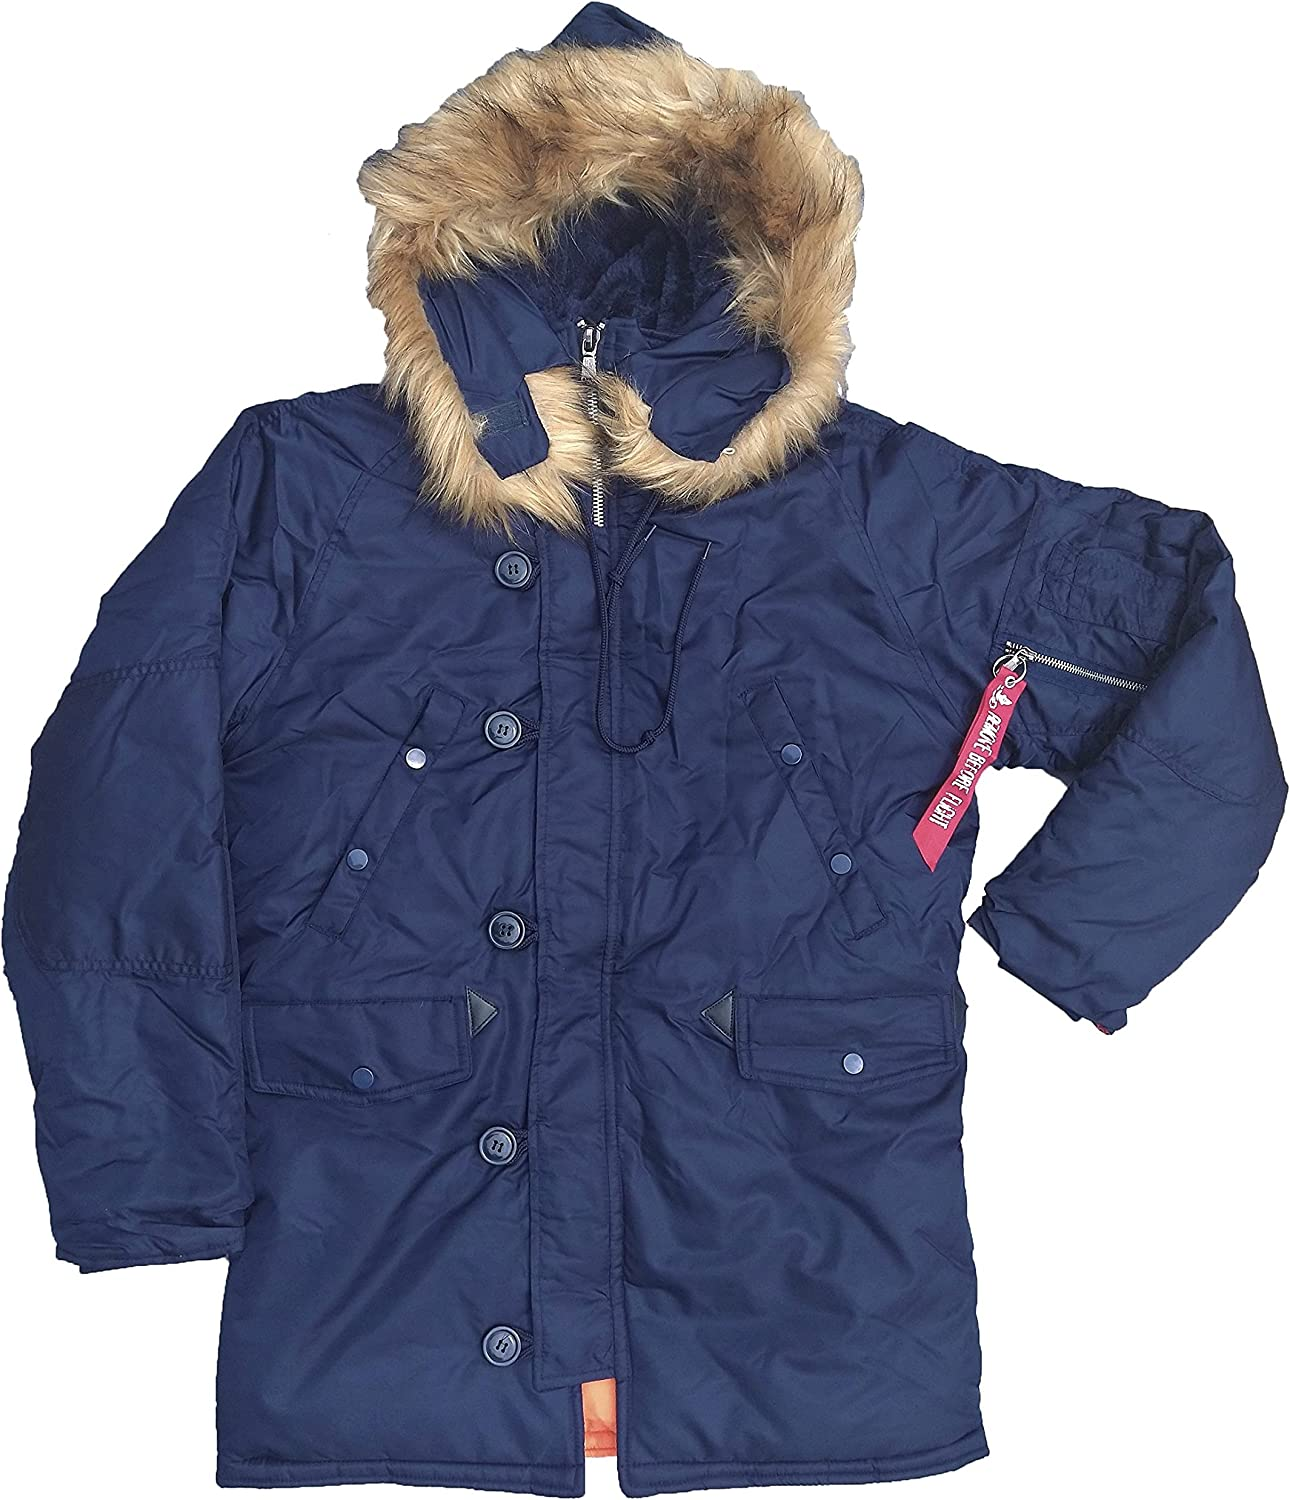 N3B Parka for extreme cold weather with fur hood and water resistant exterior shell